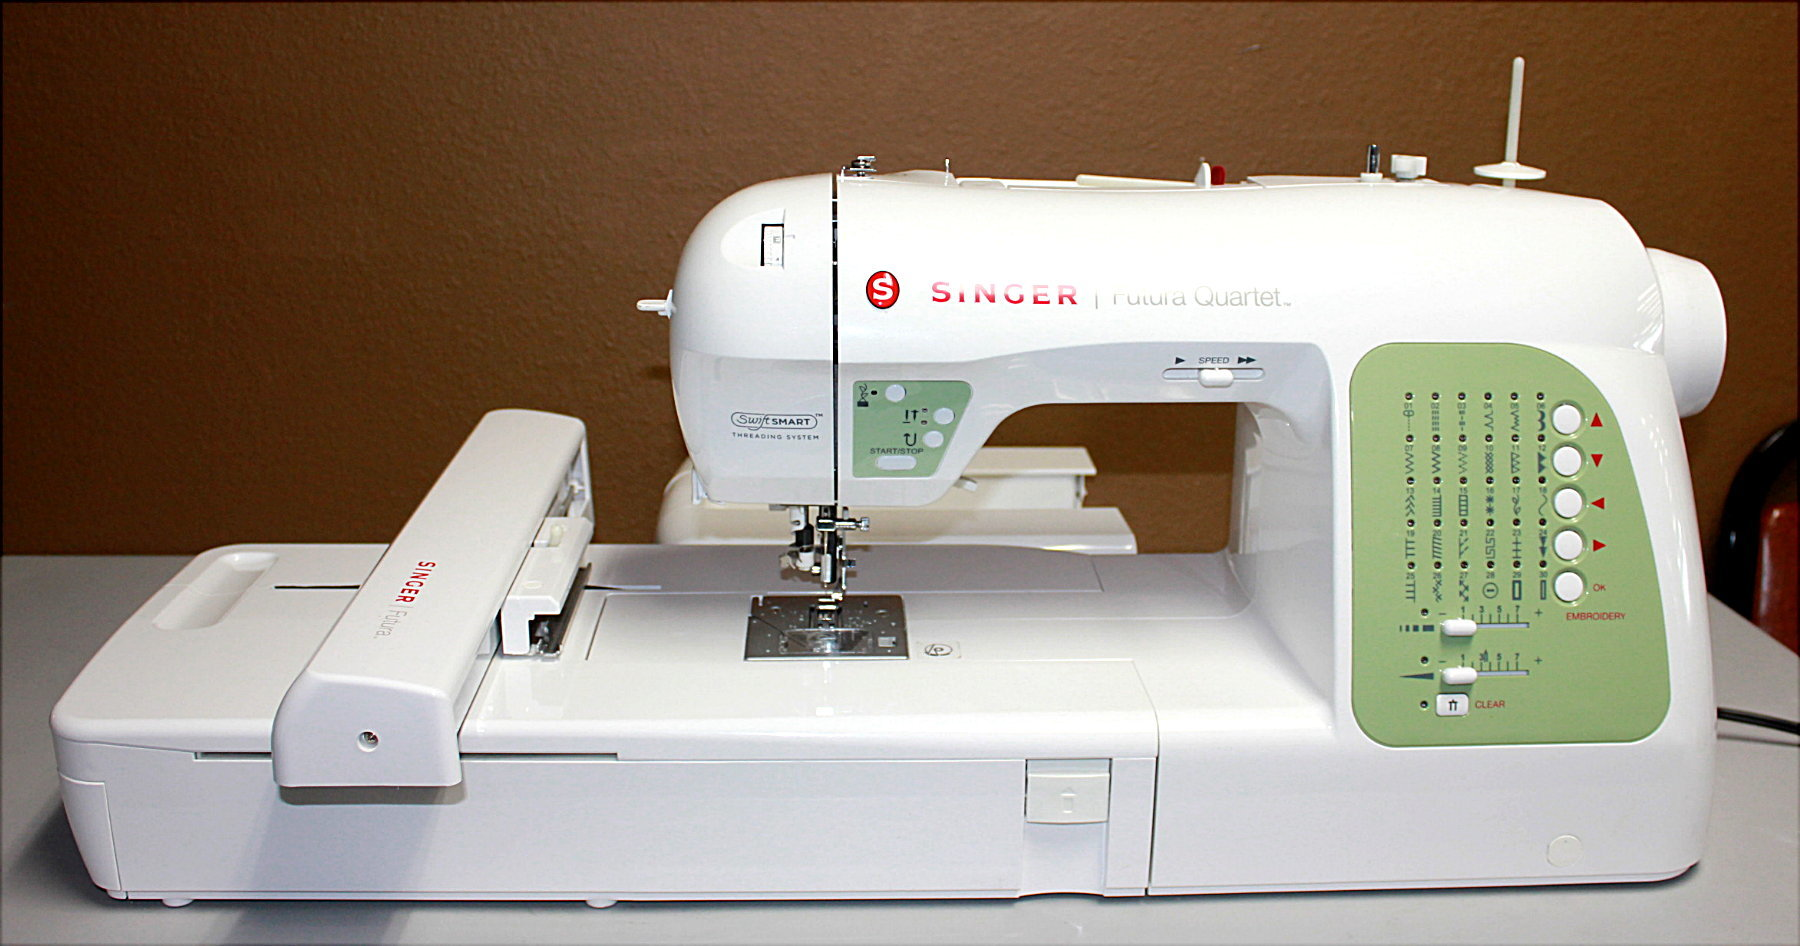 Singer FuturA SEQS-6000 Sewing and Embroidery Machine - VERY NICE!!